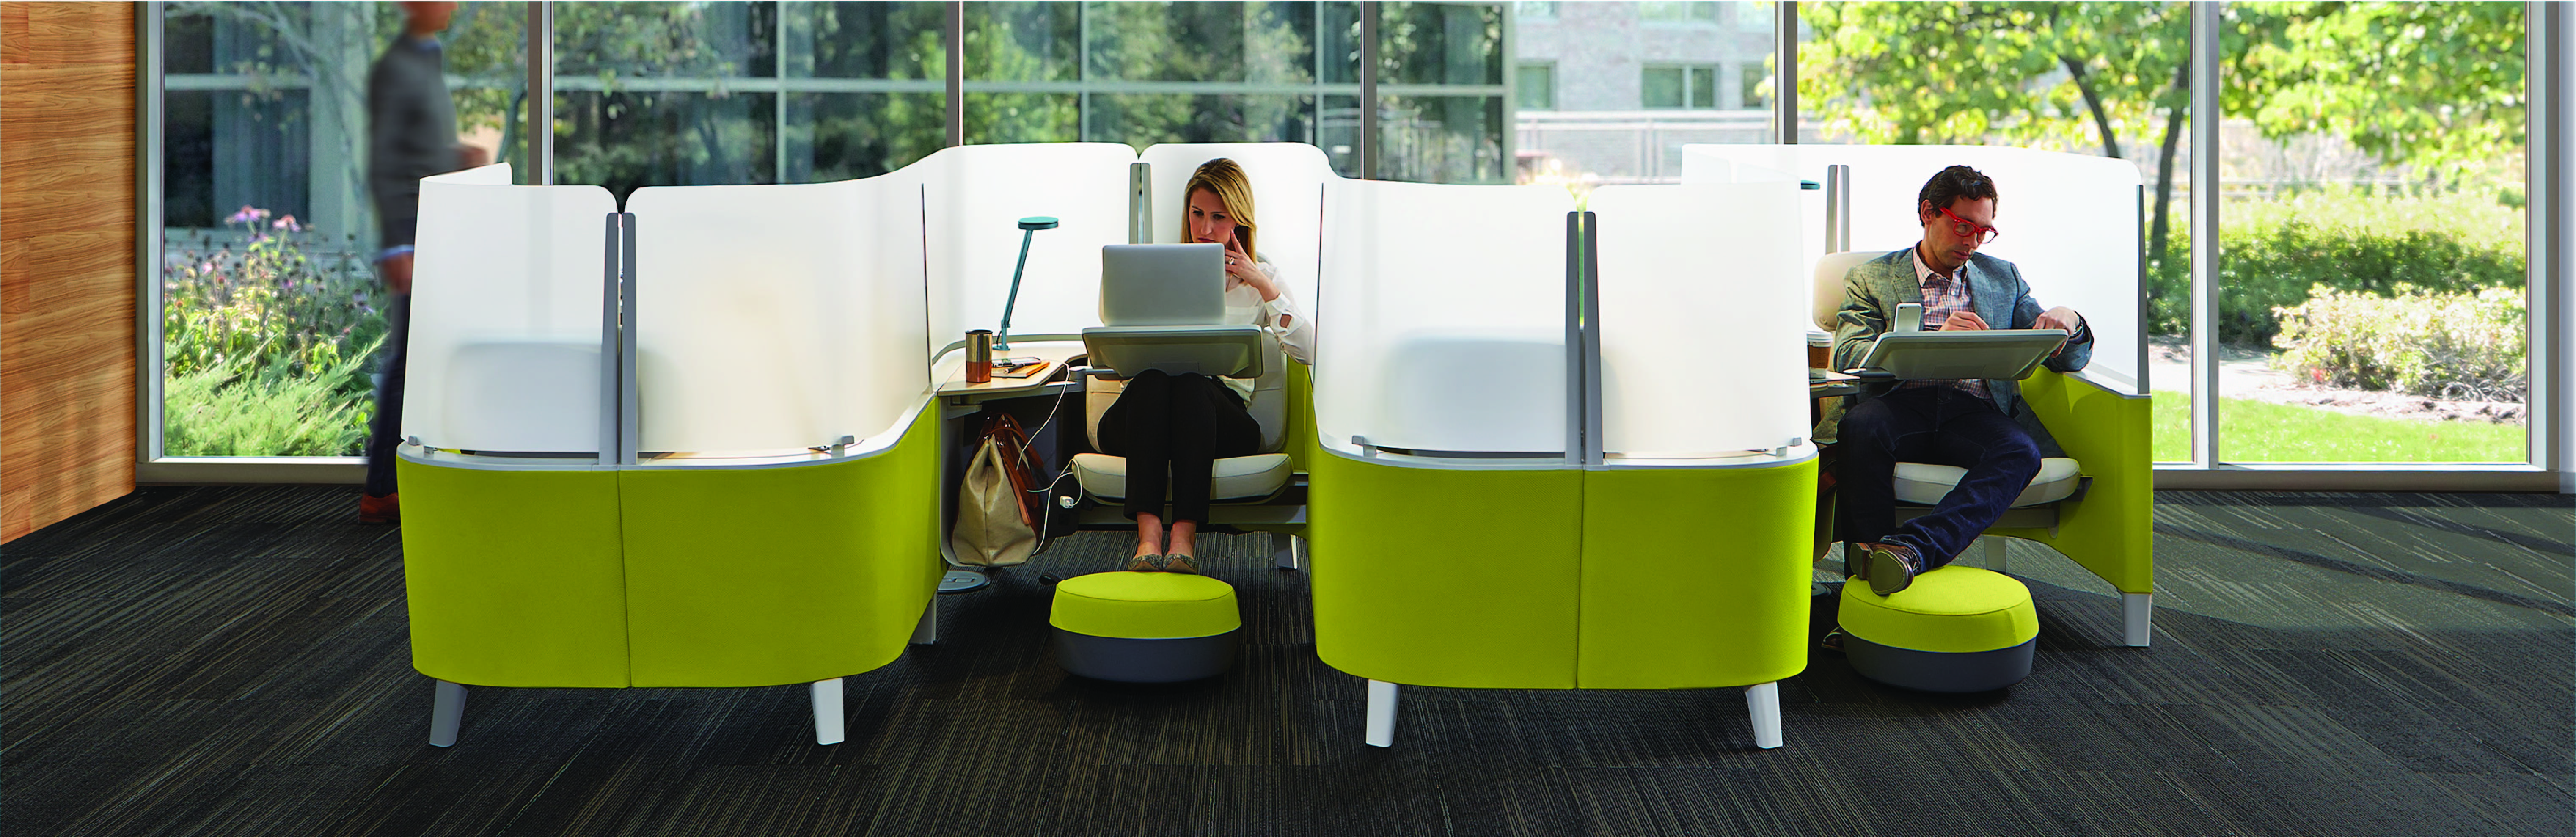 The Brody WorkLounge promotes mindfulness at work